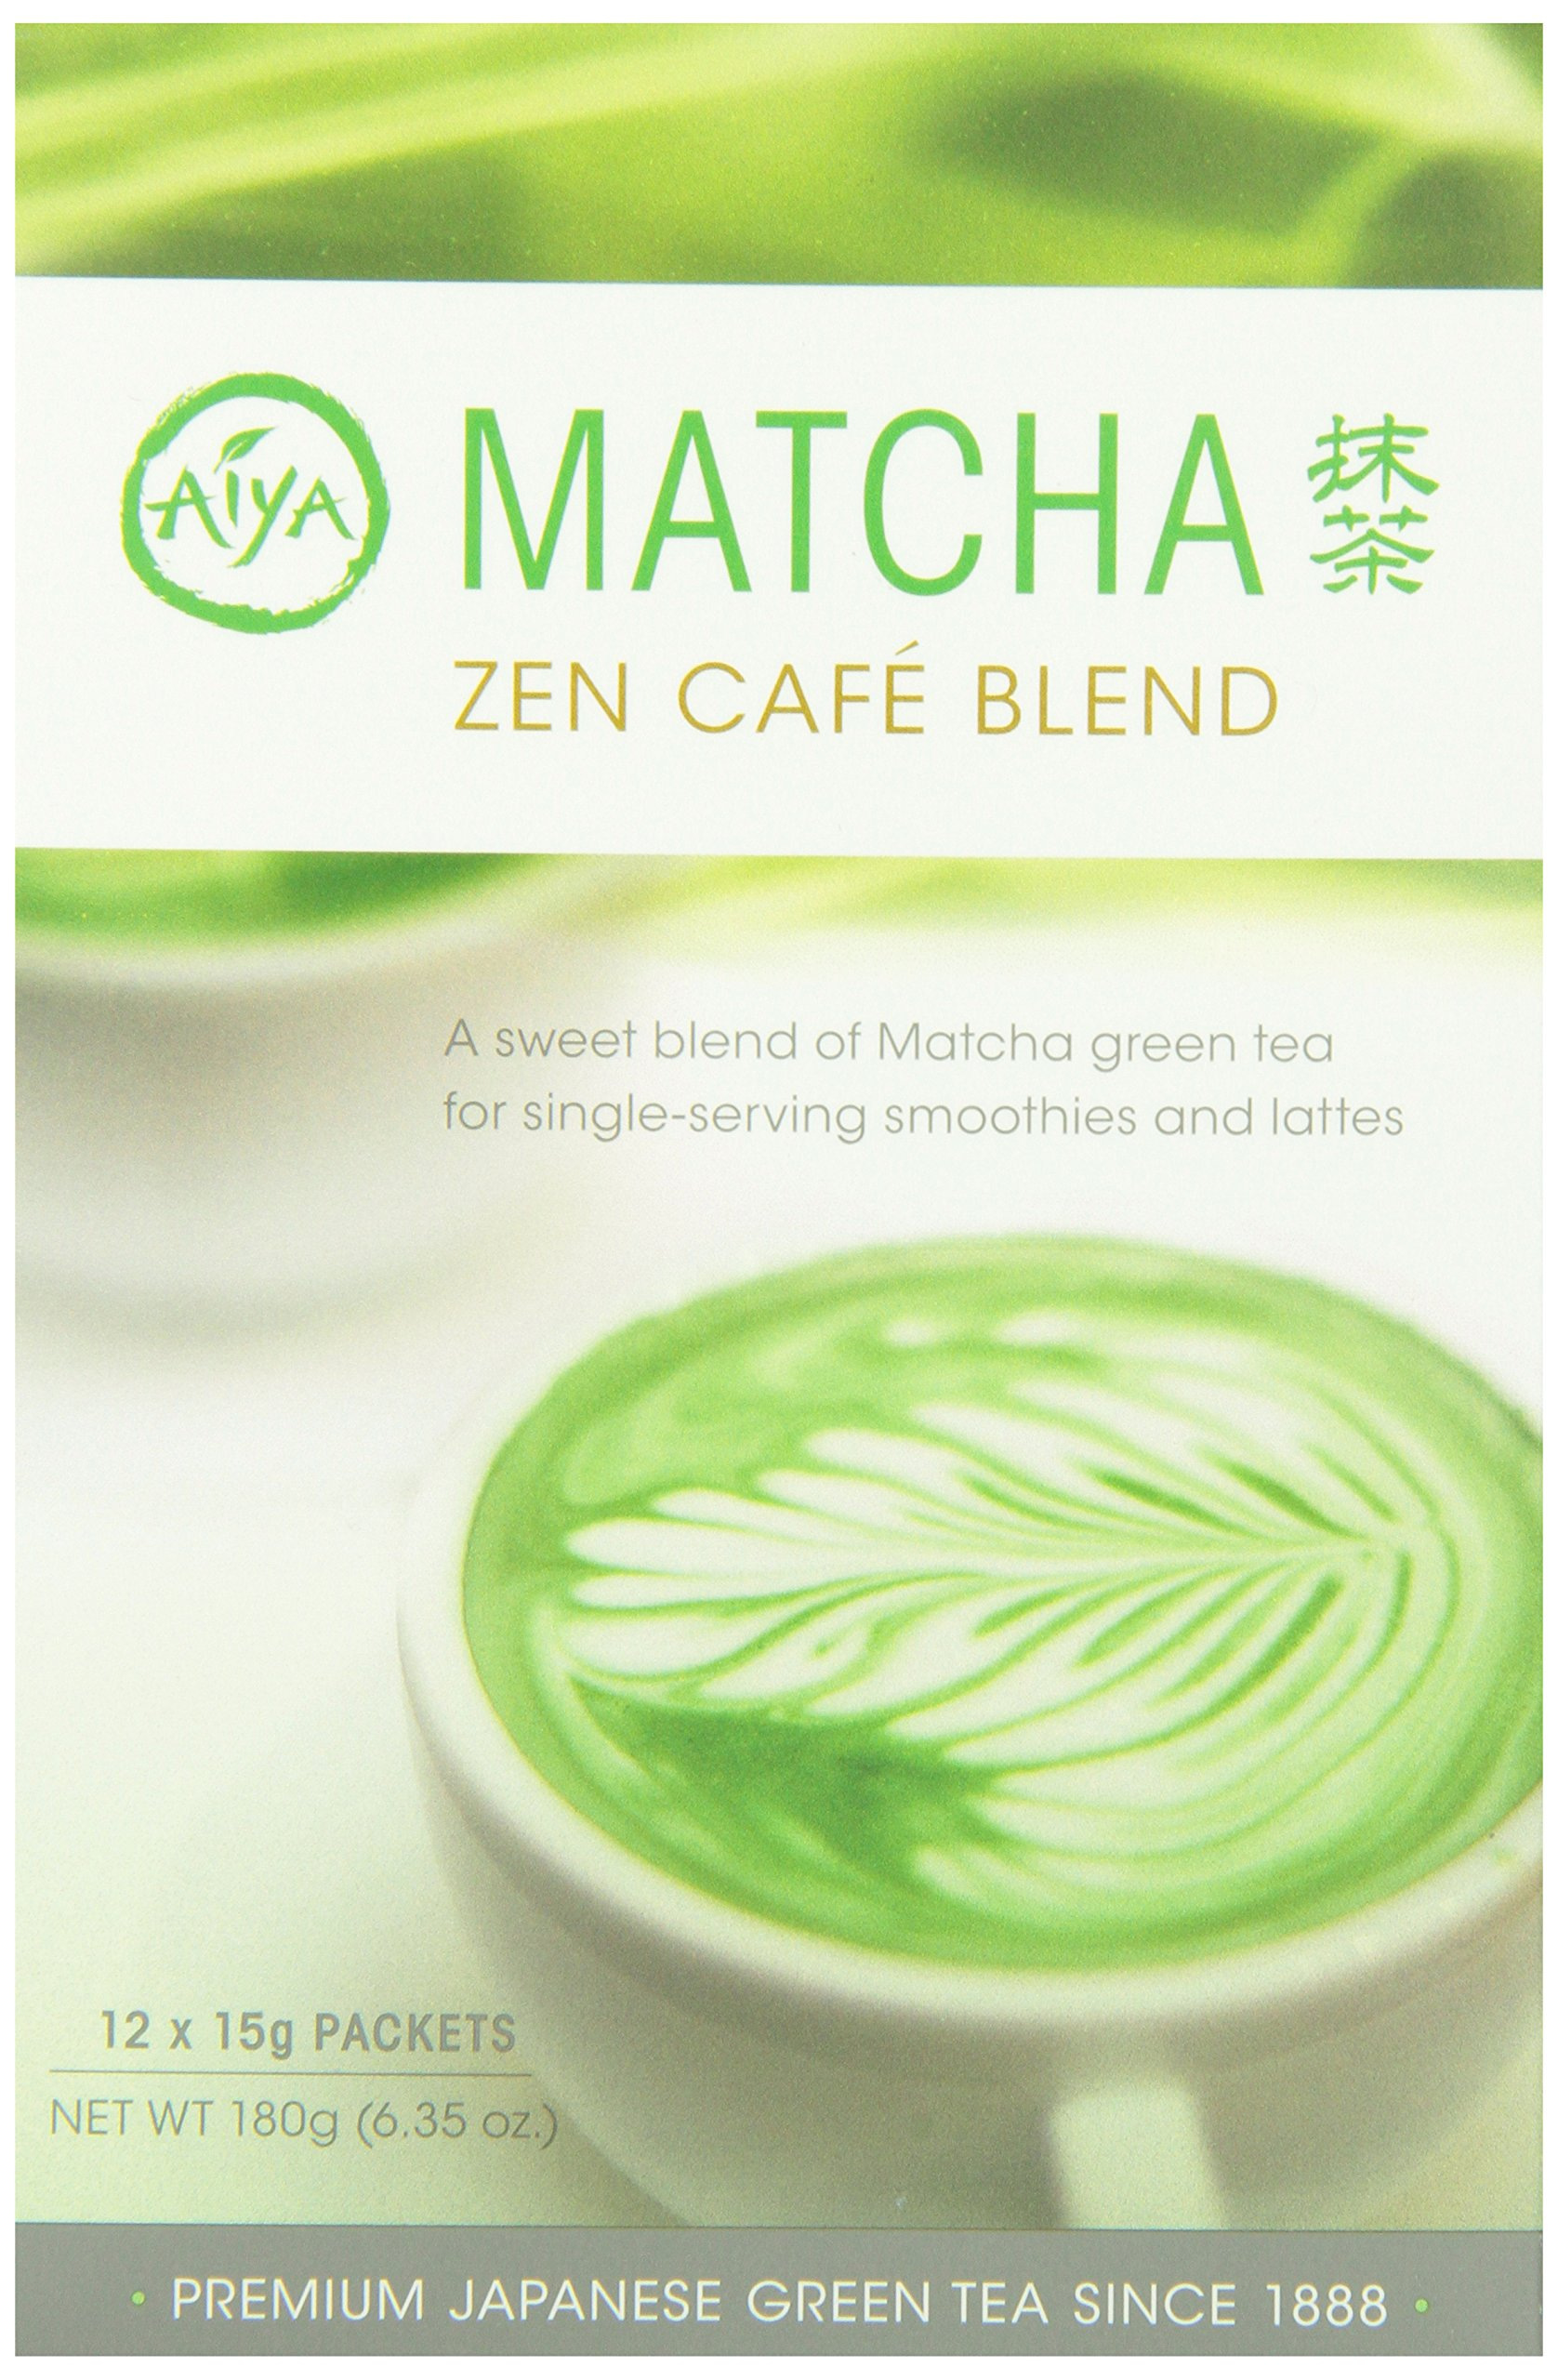 Aiya Matcha Zen Cafe blend stick packs 12ct (1 box) by AIYA SINCE 1888